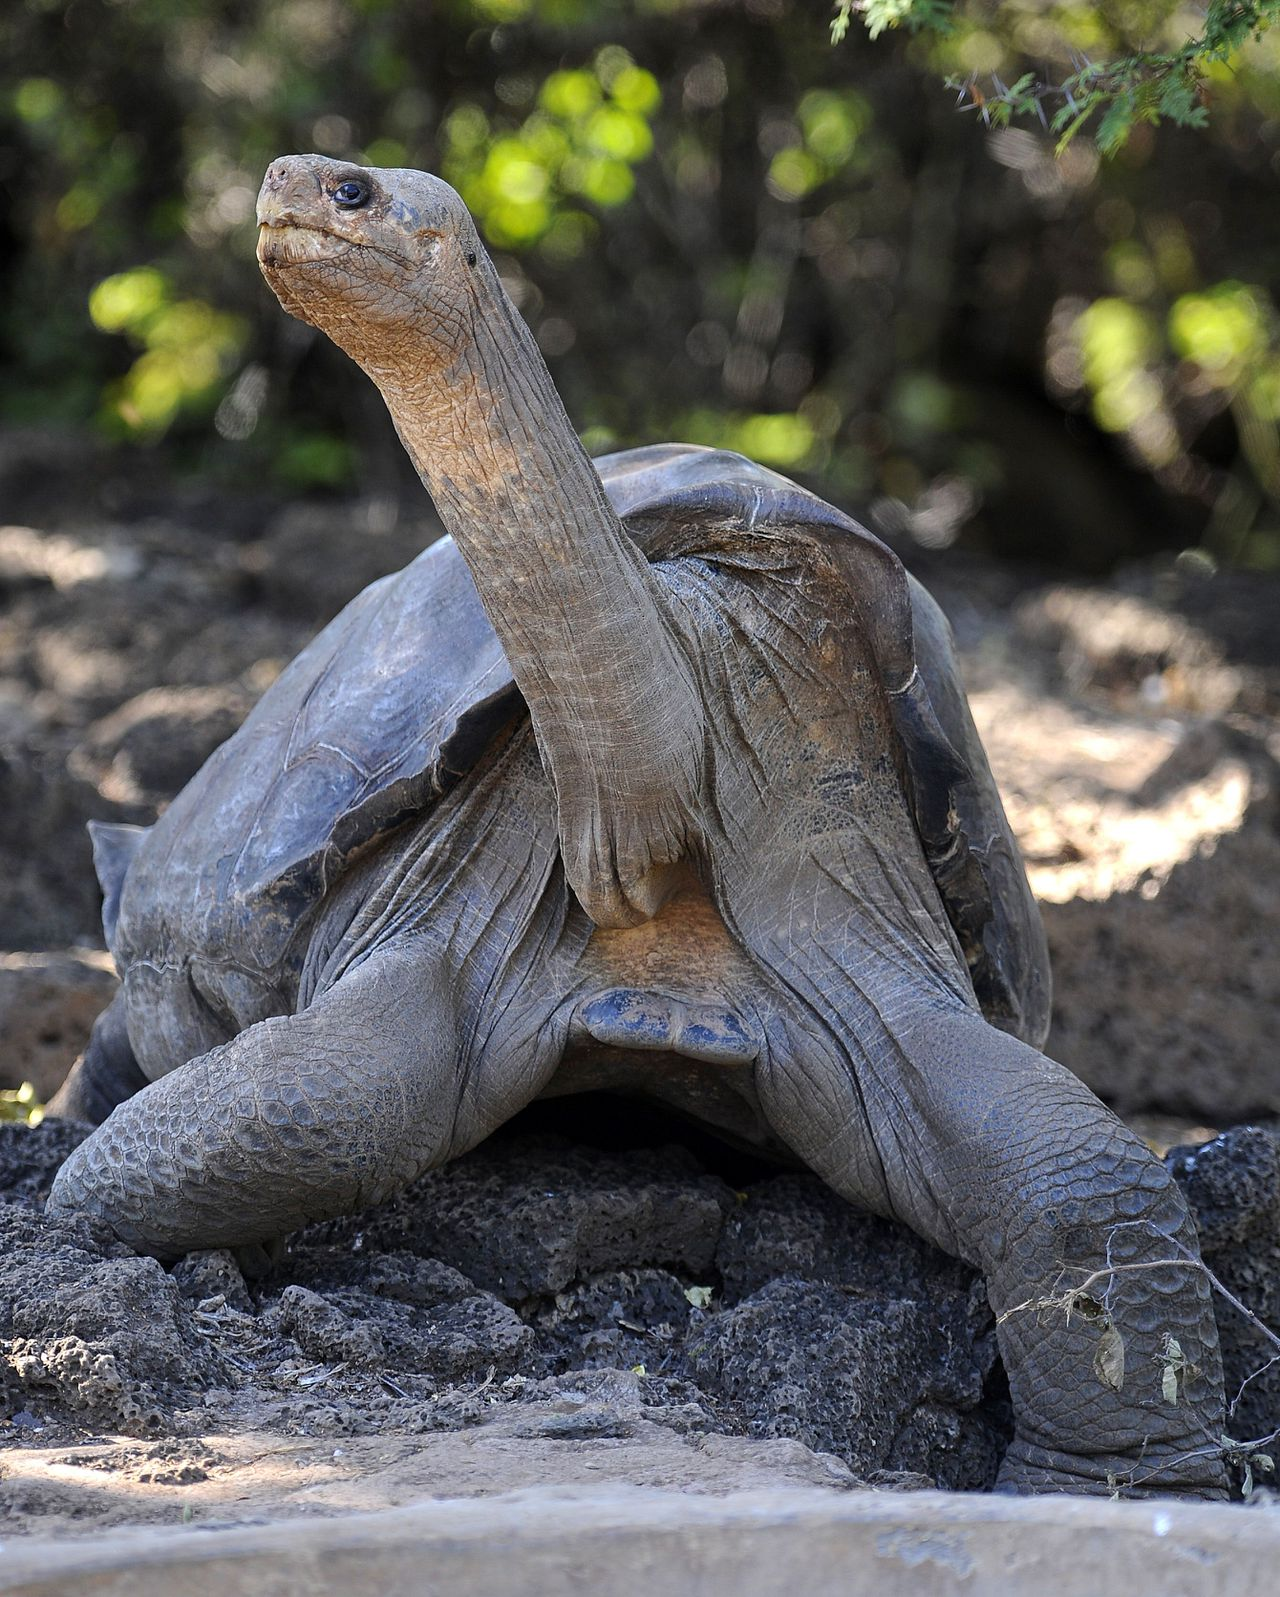 Lonesome George, the last known individual of the Pinta Island Tortoise, subspecies Geochelone nigra abingdoni, is pictured at Galapagos National Park's breeding center in Puerto Ayora, Santa Cruz island, Galapagos on March 18, 2009. Lonesome George died on June 24, 2012 at the age of 100 aproximately, making the Pinta Island Tortoise extict. AFP PHOTO/Rodrigo BUENDIA